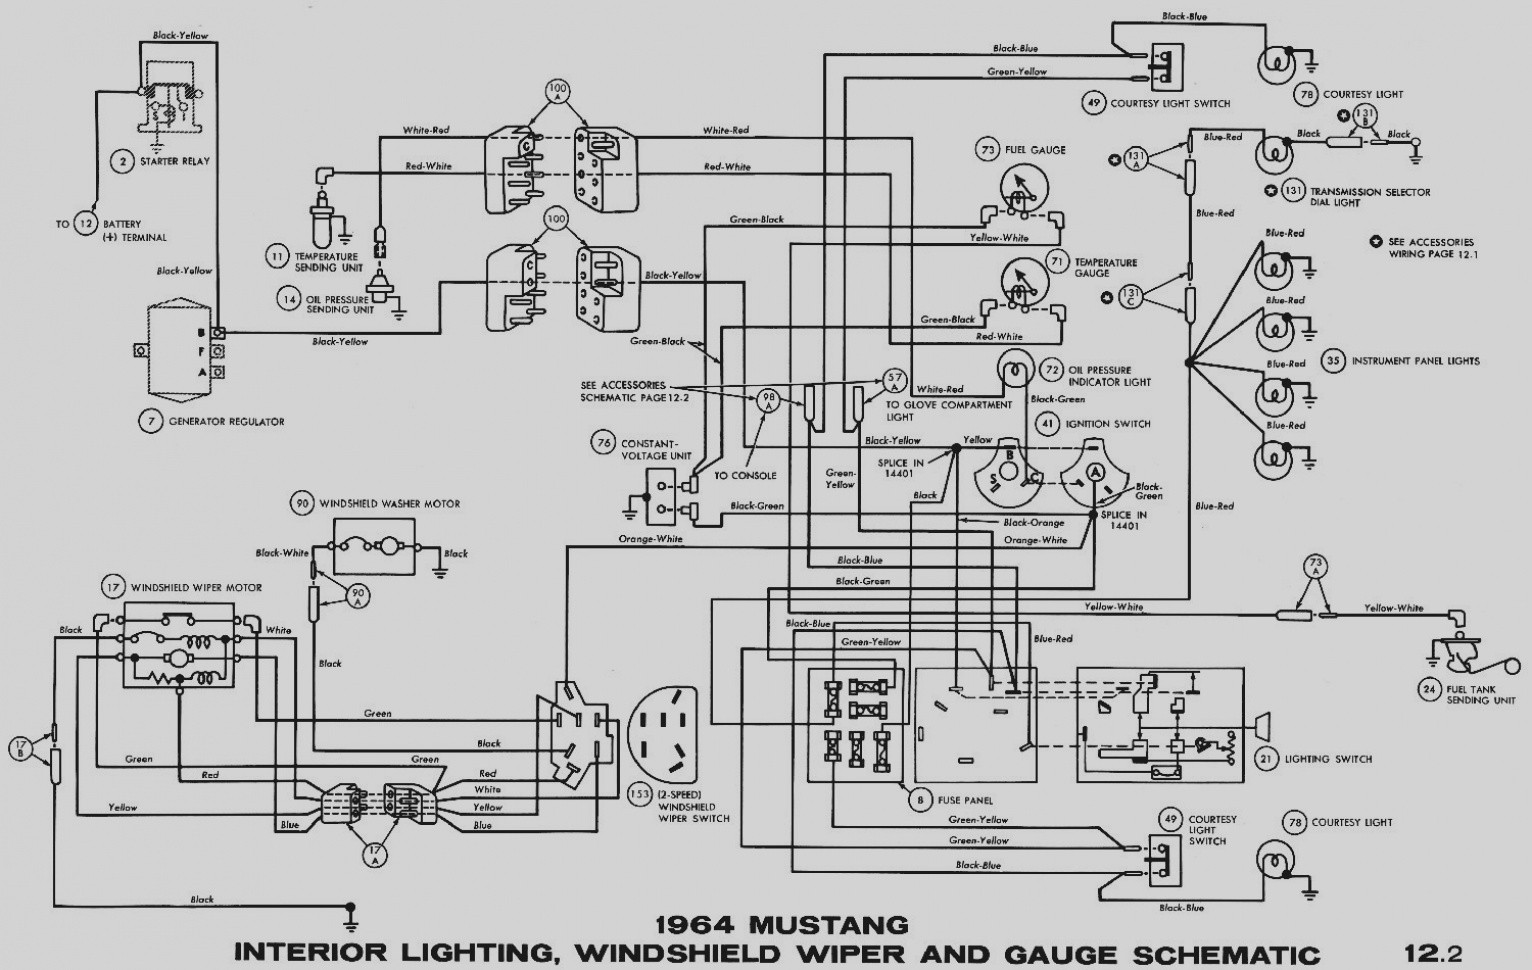 89 Mustang Fuse Diagram Wiring Library. 1989 GMC Sierra Wiring Diagram. Wiring. 89 Mustang Dash Wiring Schematics At Scoala.co